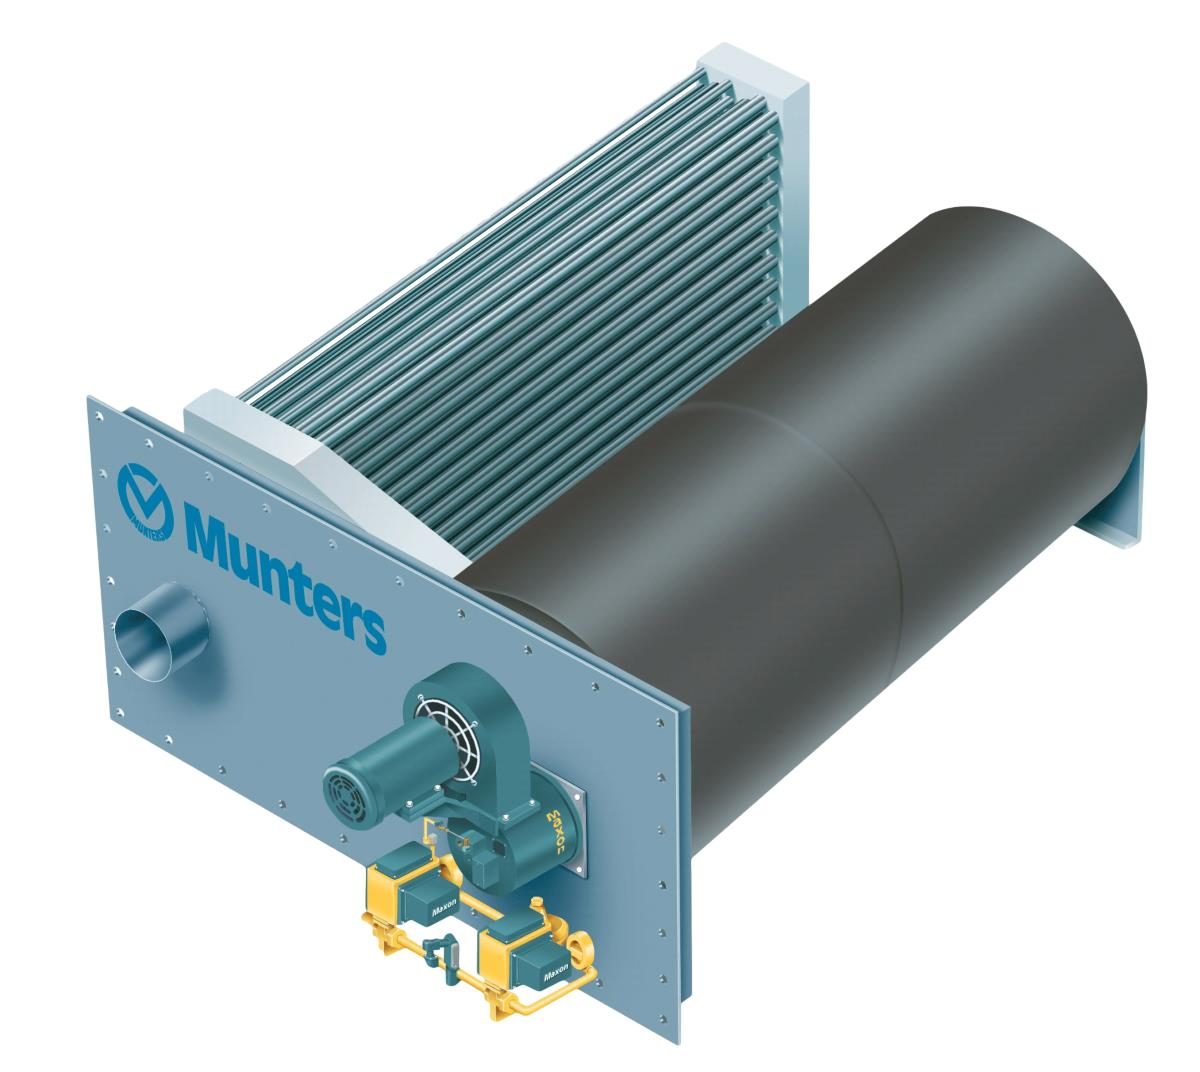 Munters VariMax - Once-Through Heater (OTH)